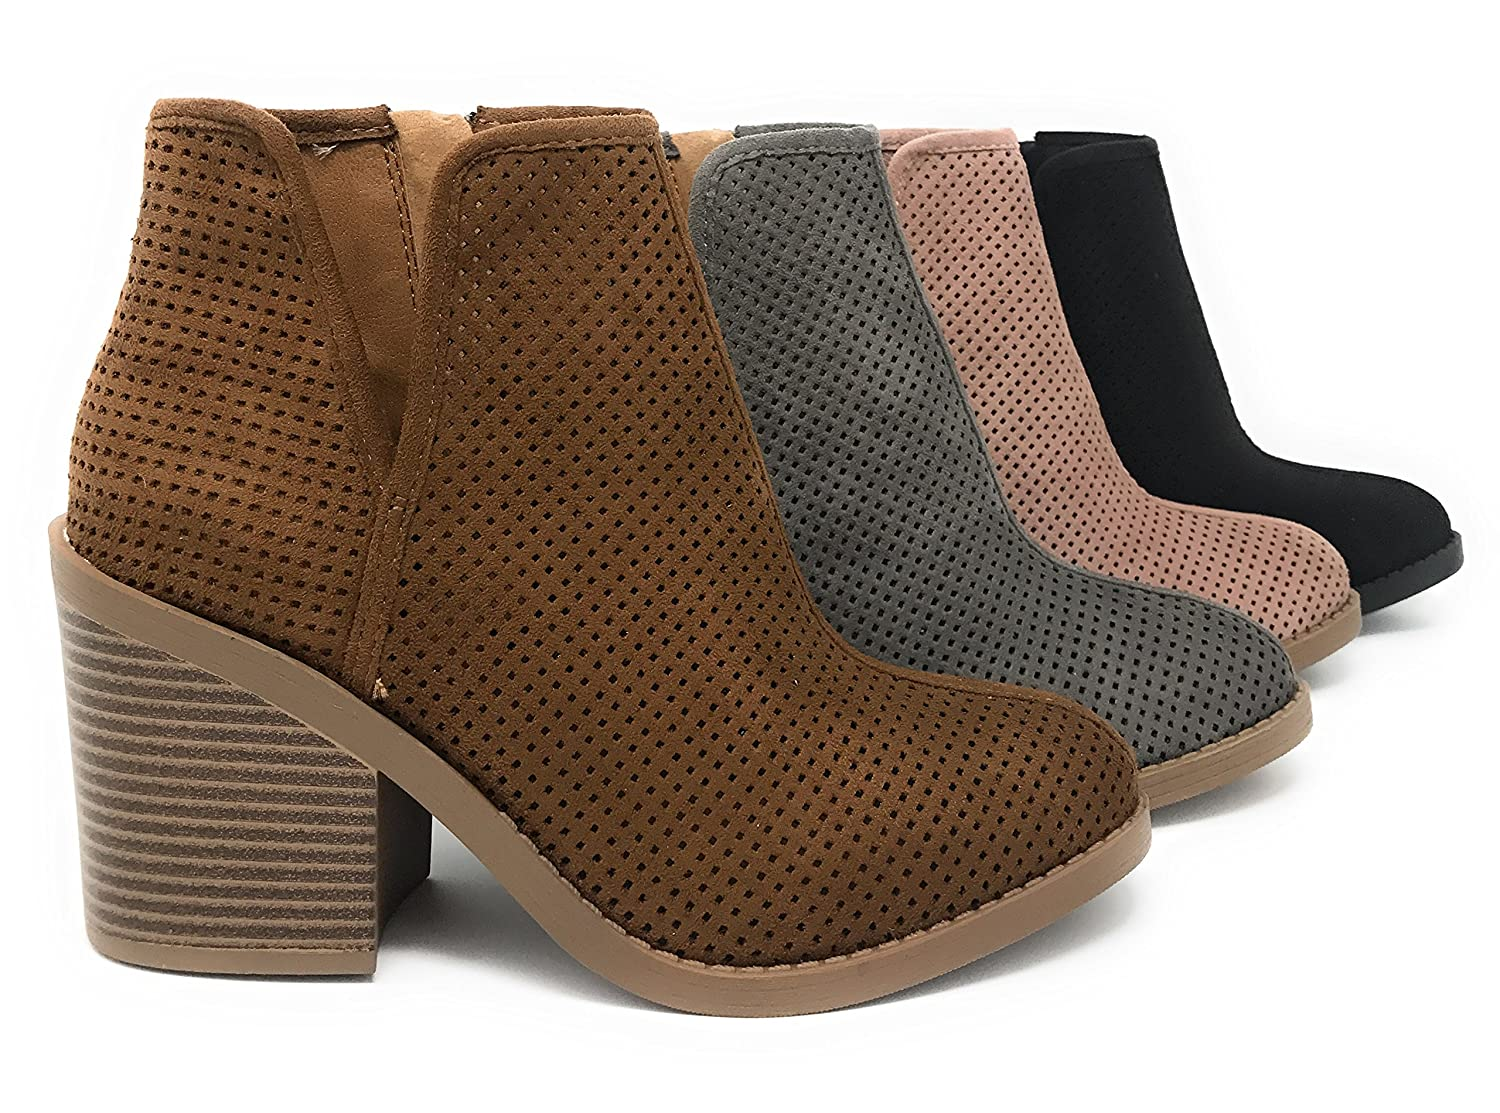 57064d099ccd MVE Shoes Soda Womens Target Perforated Stacked Block Heel Ankle Bootie